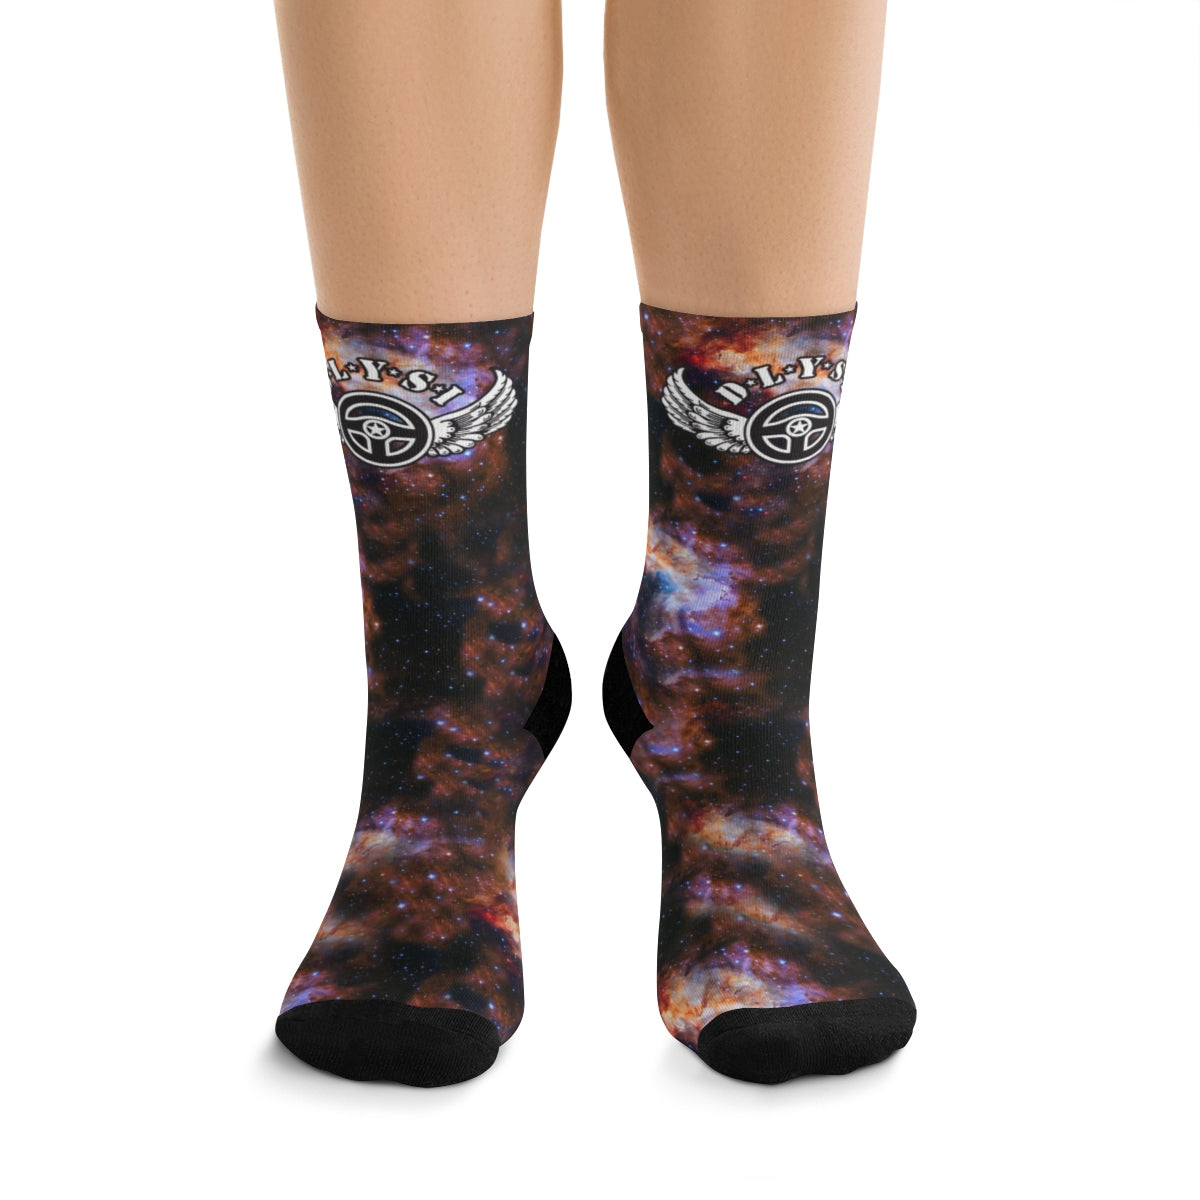 D*L*Y*S*I Cosmo Socks